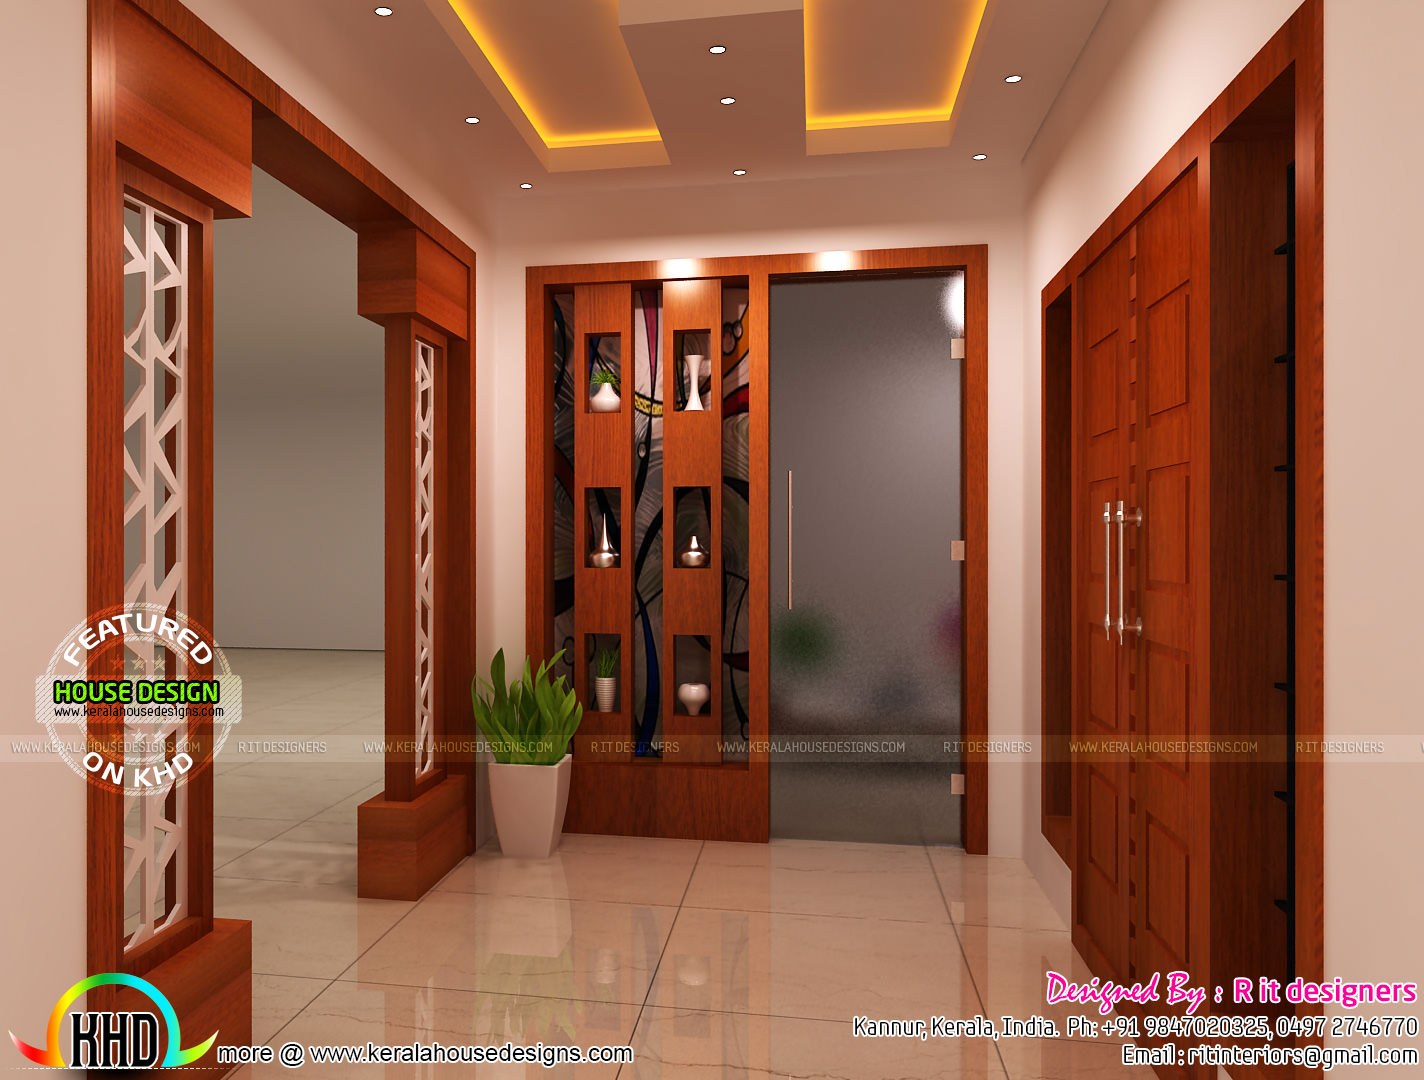 Modular kitchen, living, bathroom and foyer